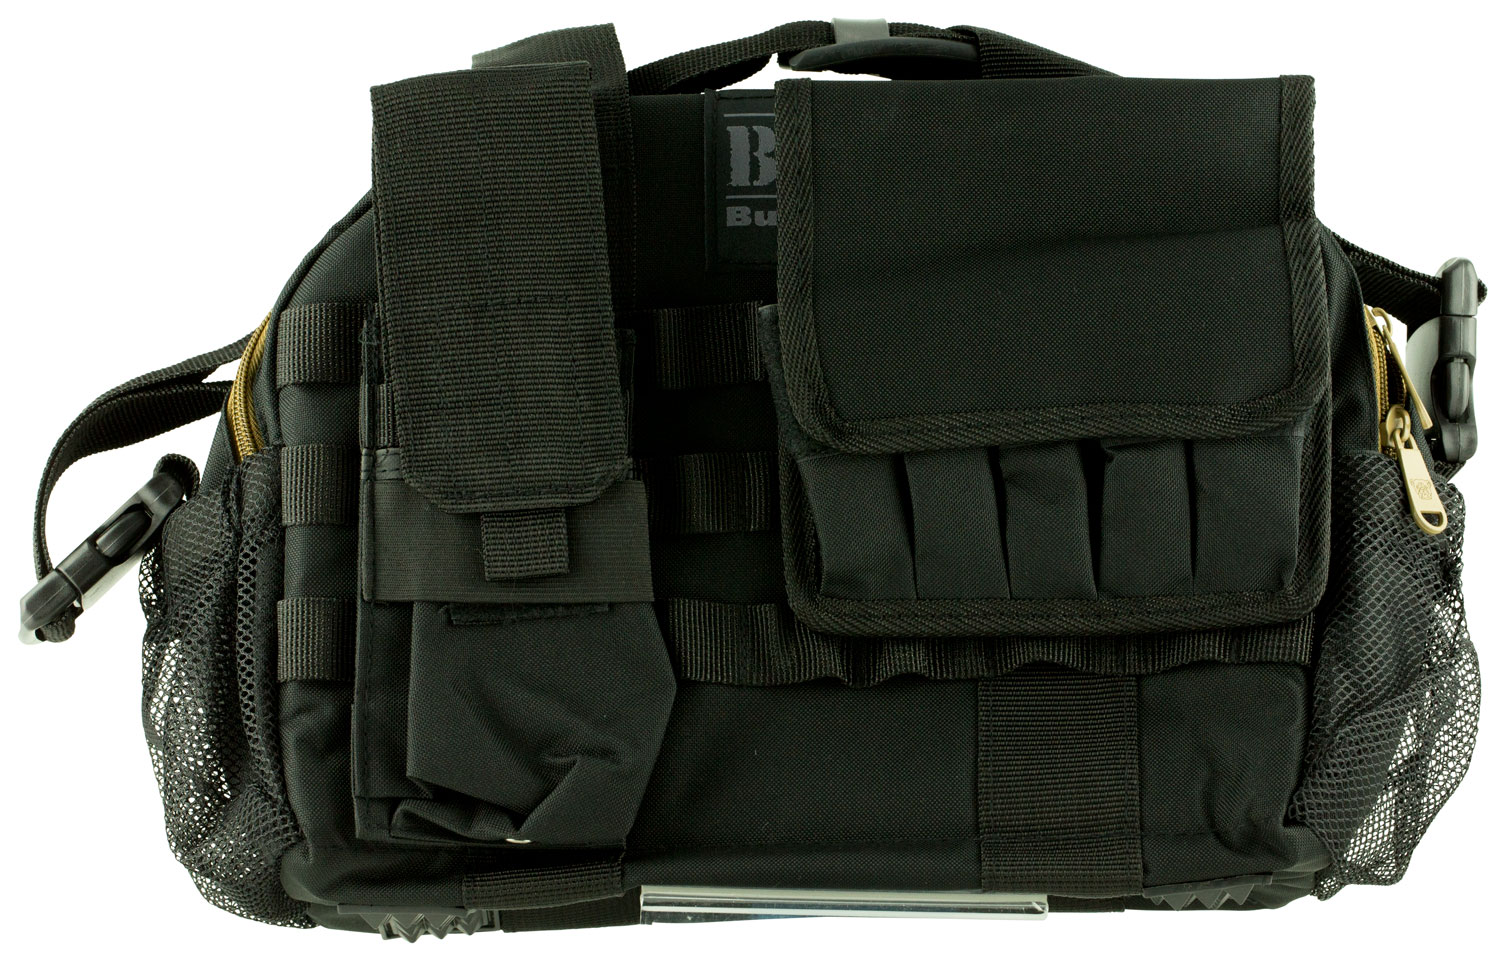 Bulldog BDT940B Tactical Range Bag with MOLLE Mag Pouches 17